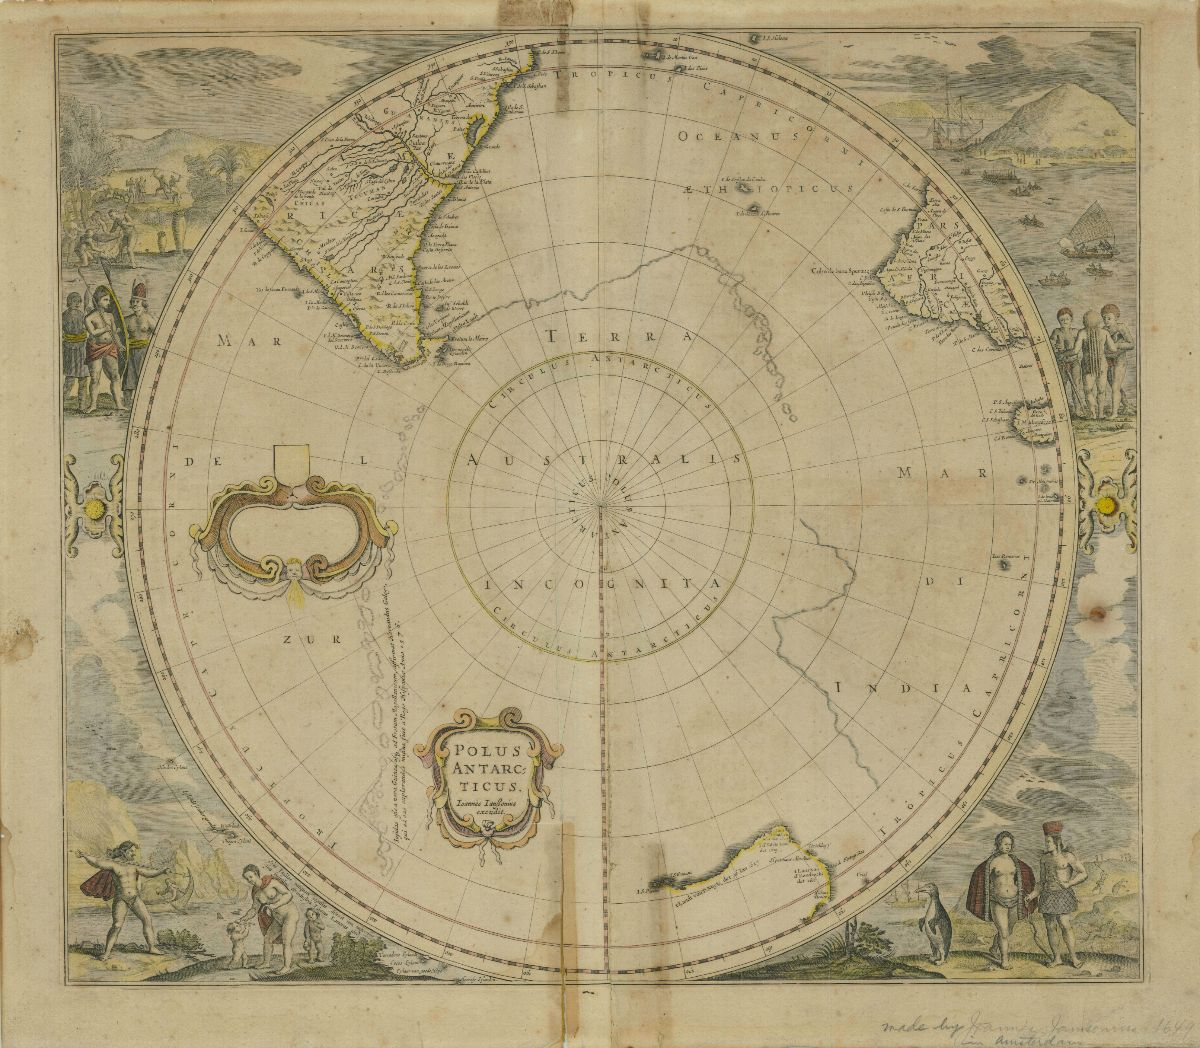 Illustrated atlas page of the Polus Antarcticus